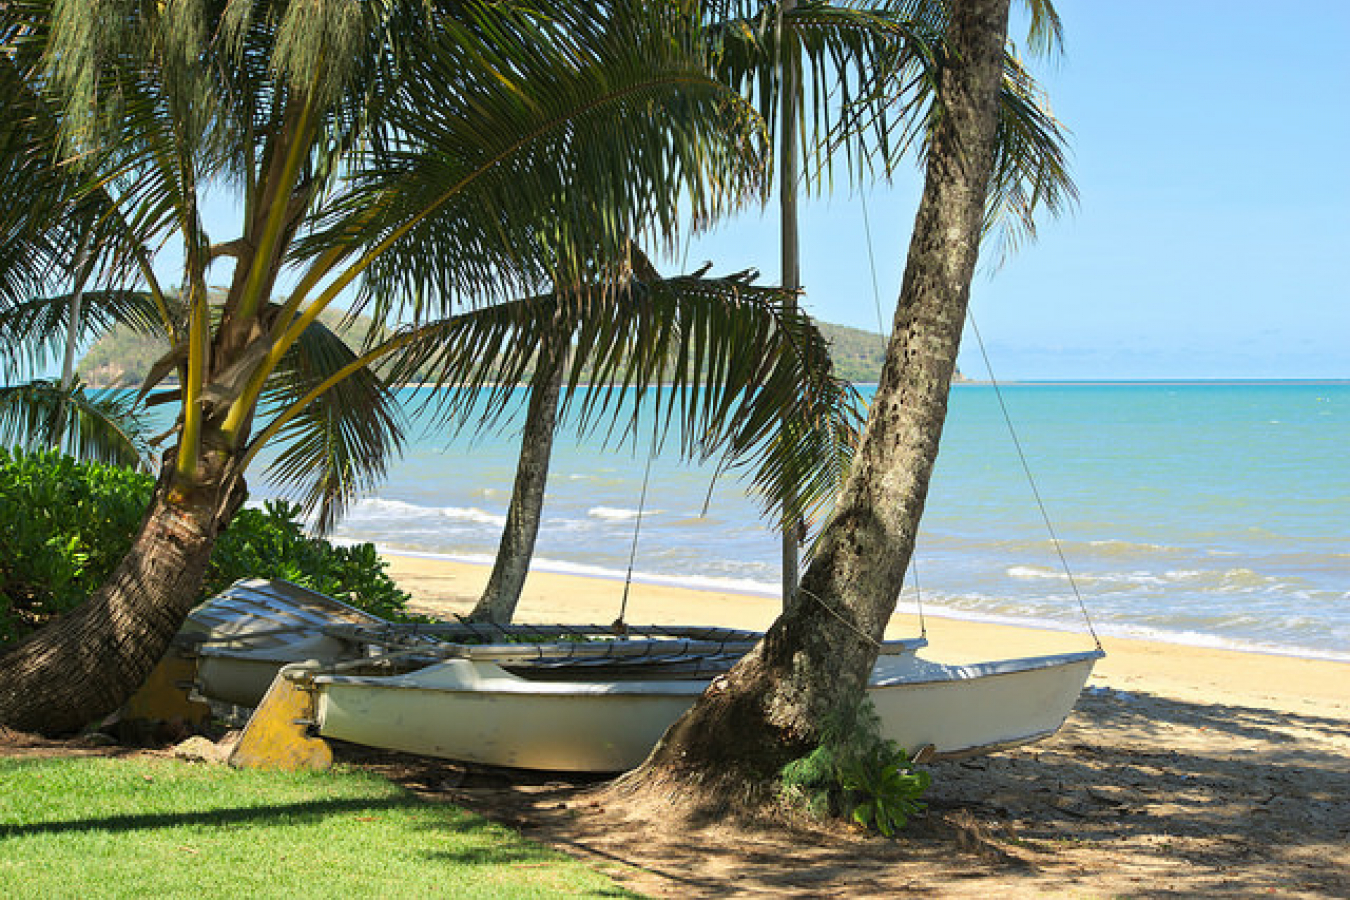 Palm Cove, Queensland, Australia